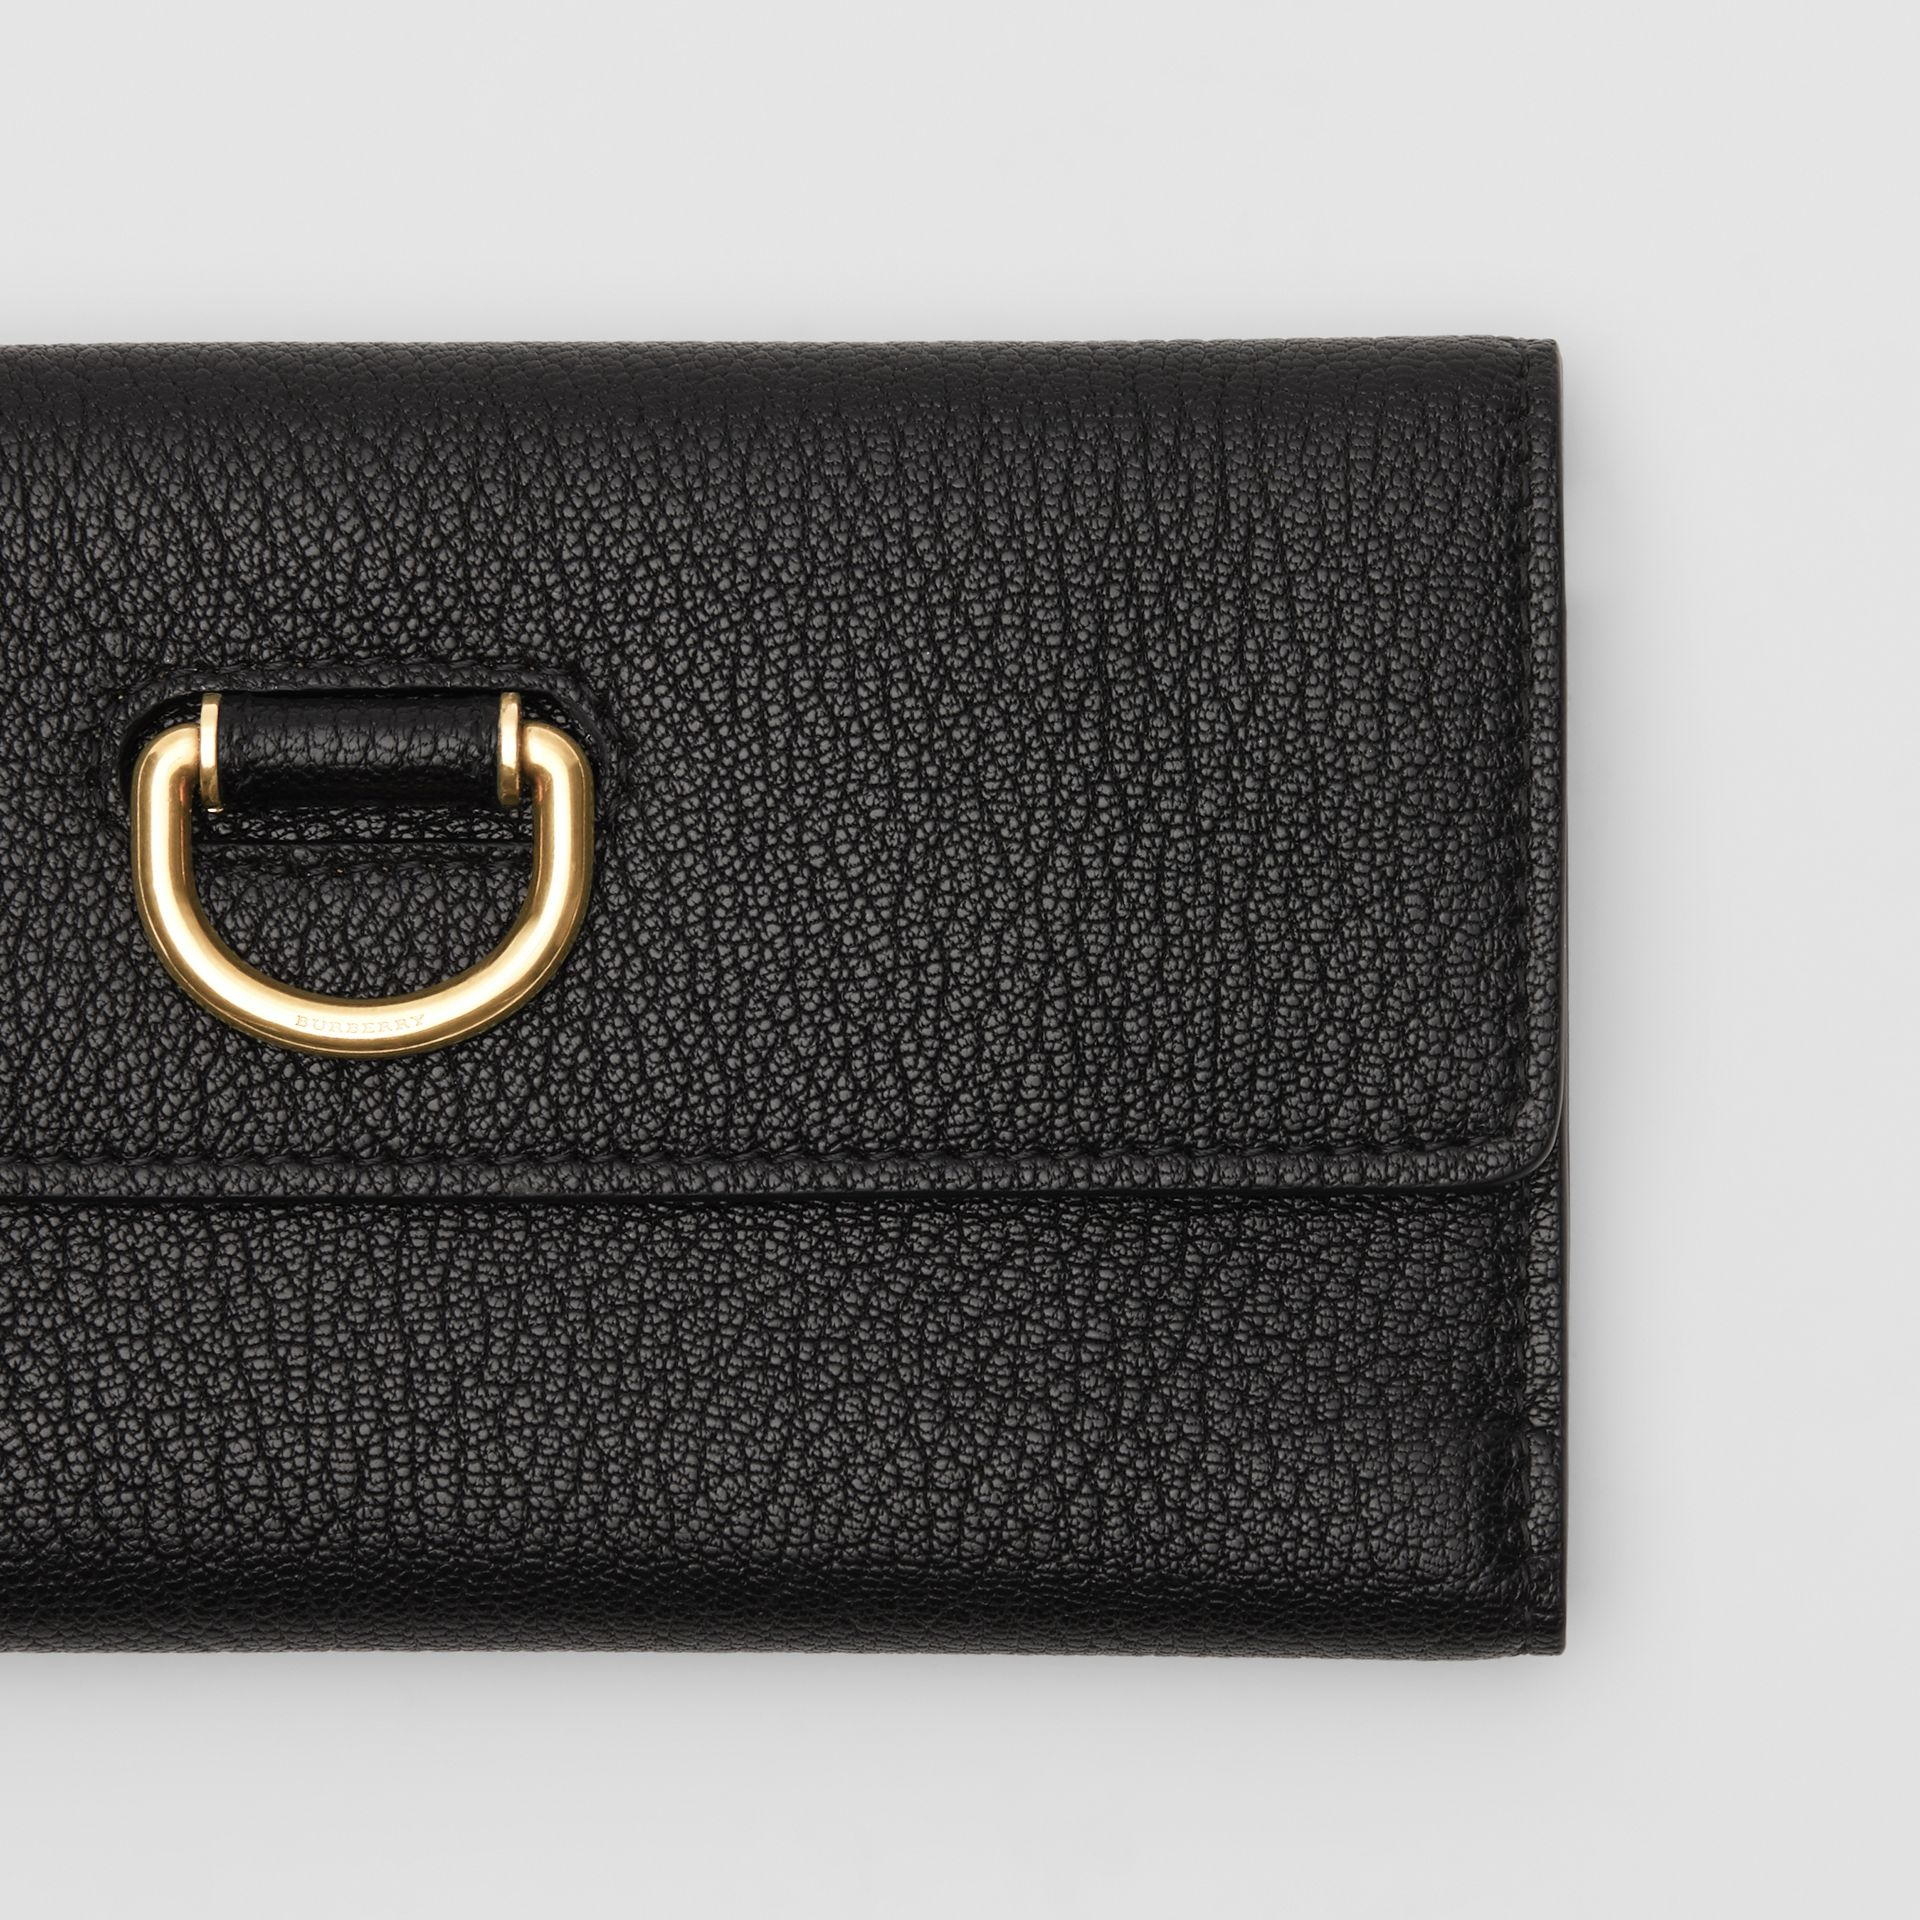 D-ring Grainy Leather Continental Wallet in Black - Women | Burberry United States - gallery image 1